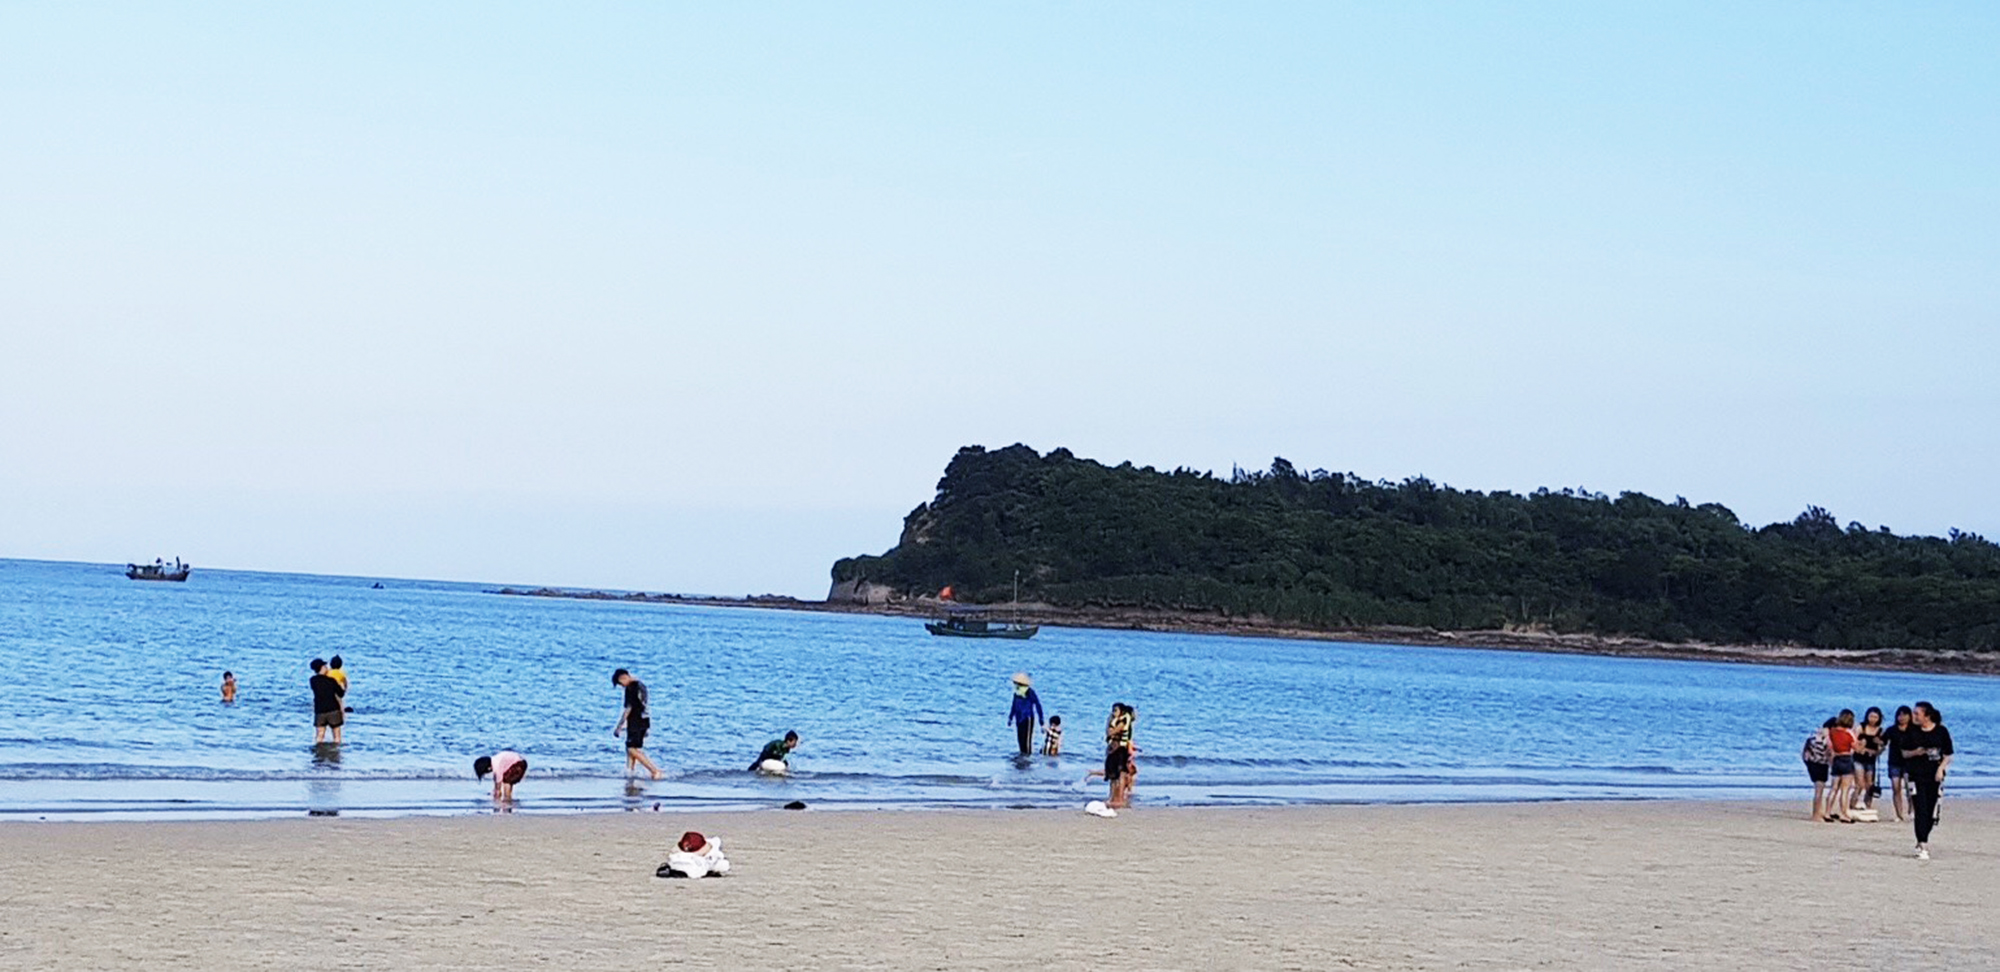 minh chau quan lan and ngoc vung islands ready for summer tourism